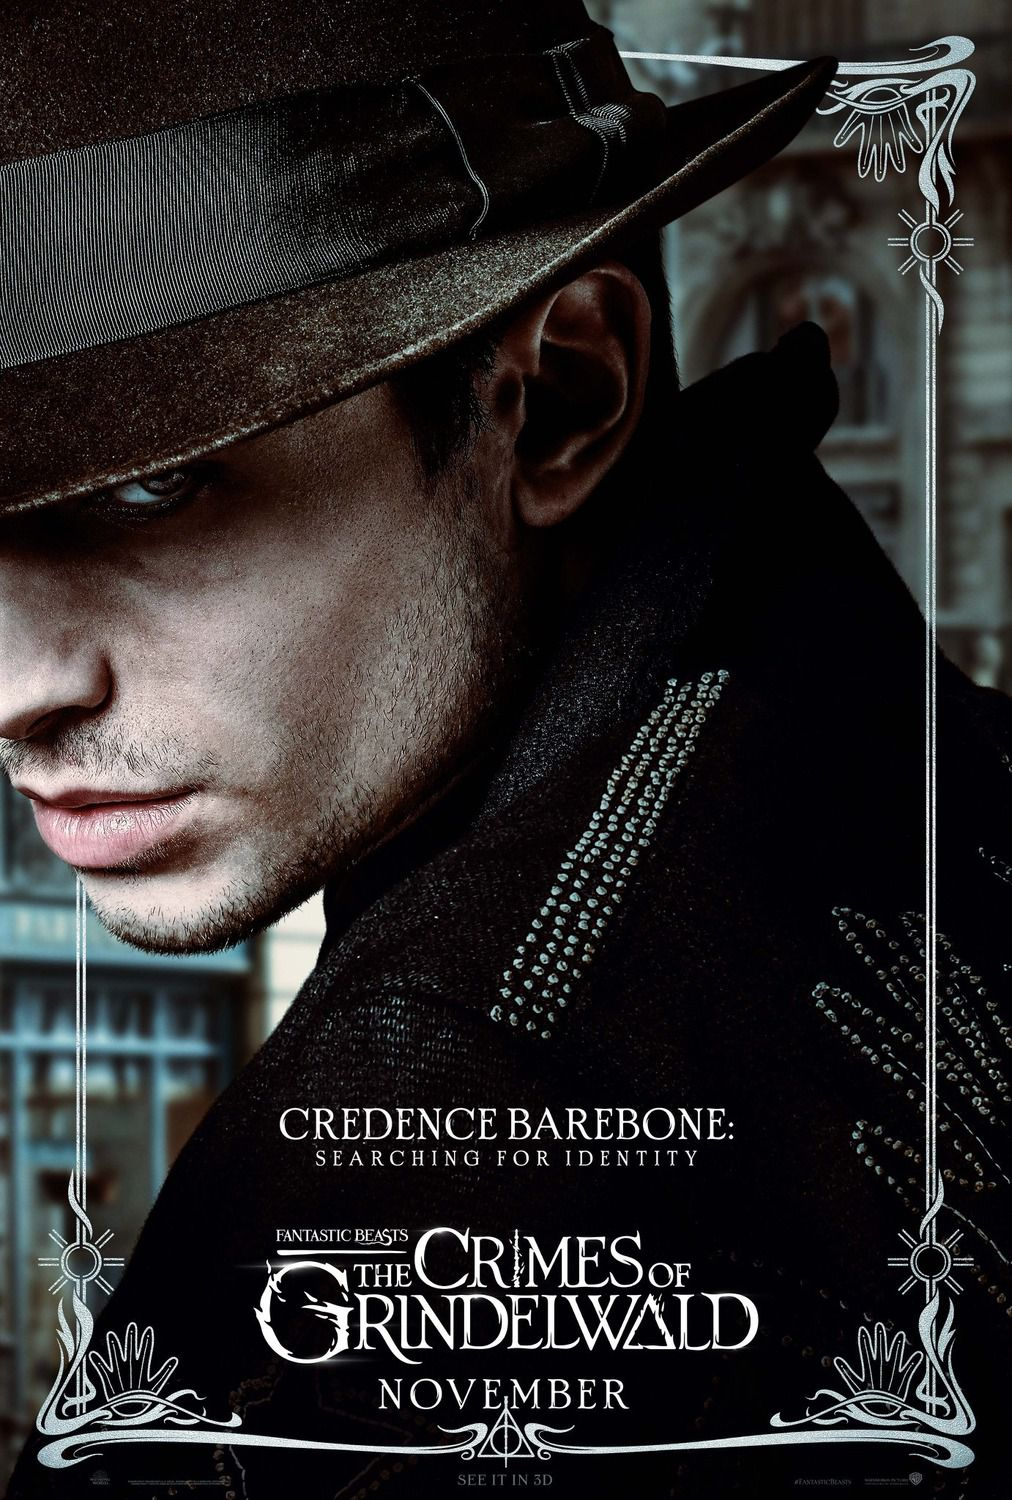 Credence Barebone searching for identity